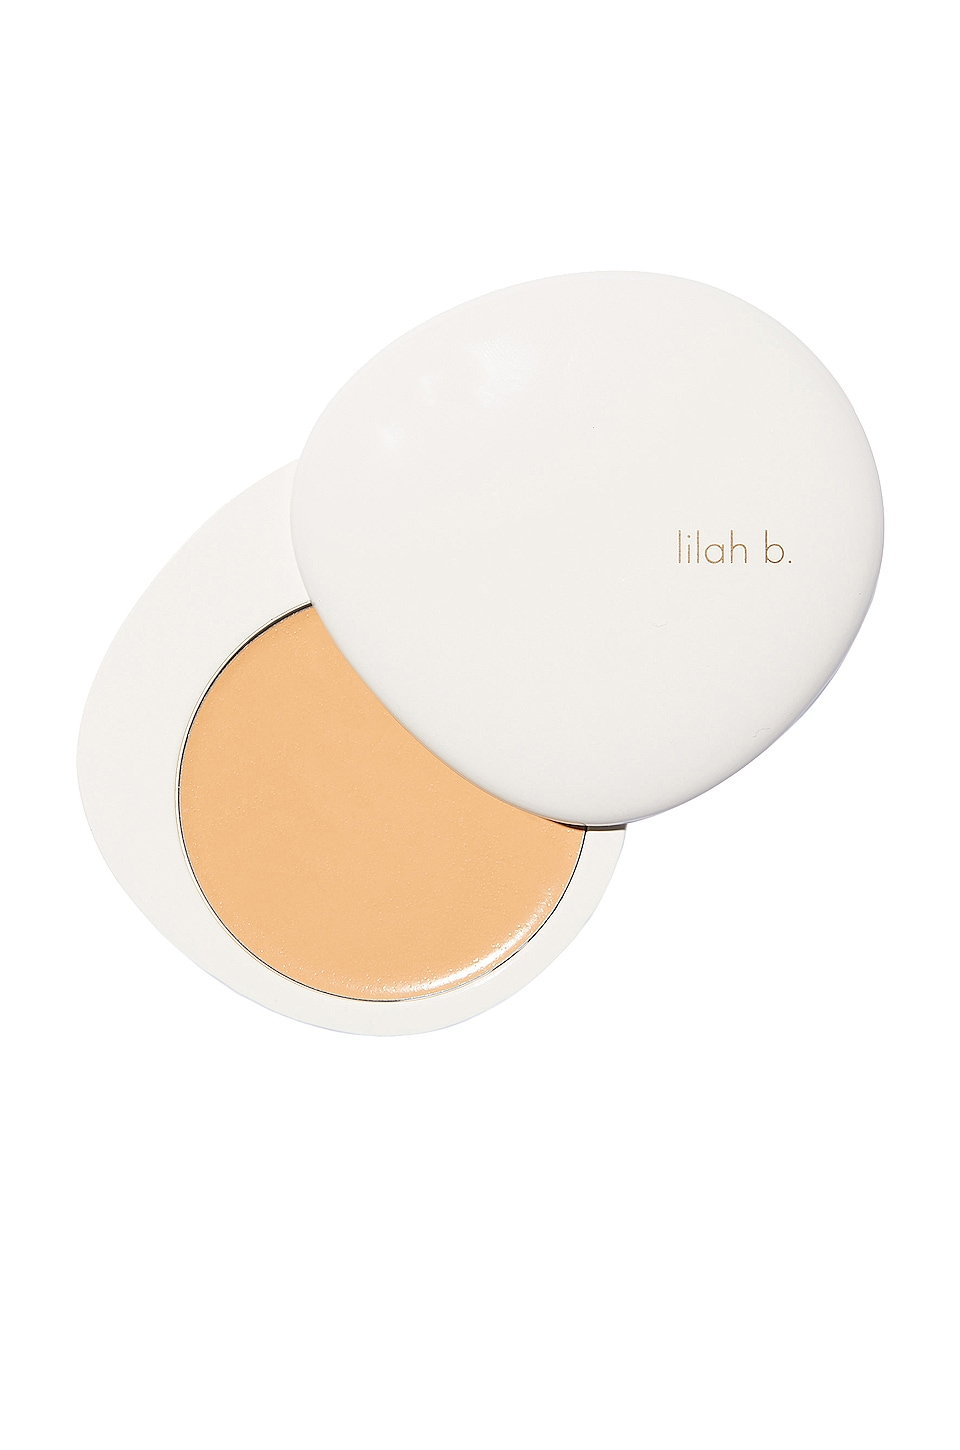 lilah b. Marvelous Matte Creme Foundation in b. classic